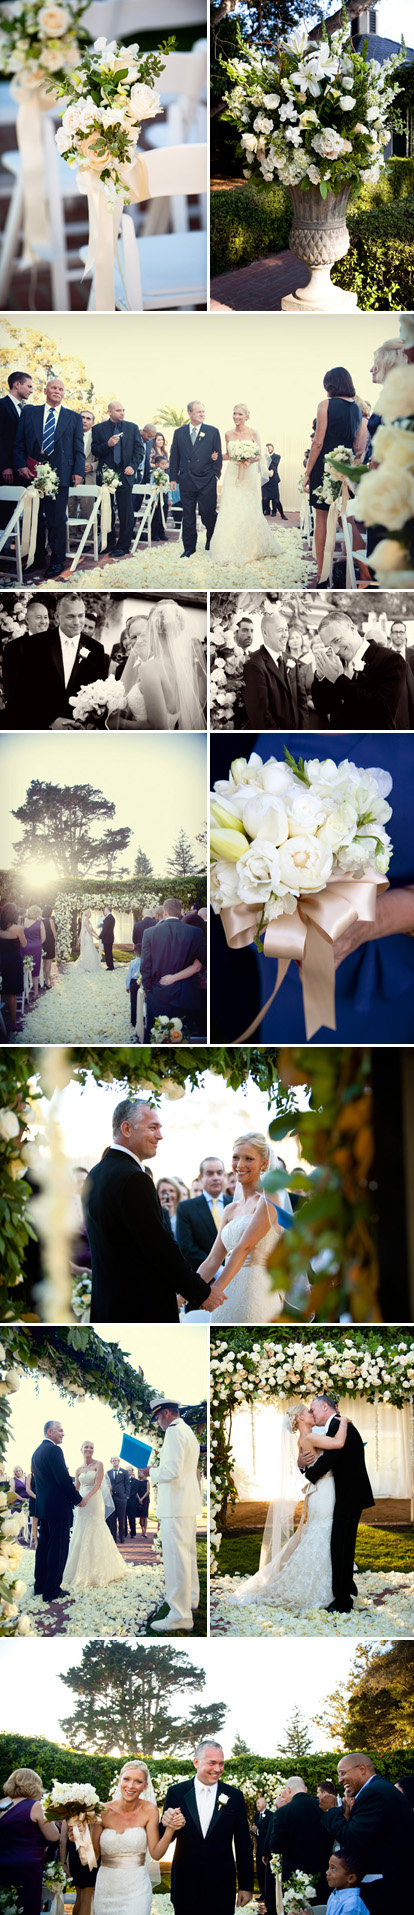 Fall Santa Barbara real wedding ceremony at The Valley Club of Montecito, cream, silver and gold wedding flowers, photographed by Boutwell Studio